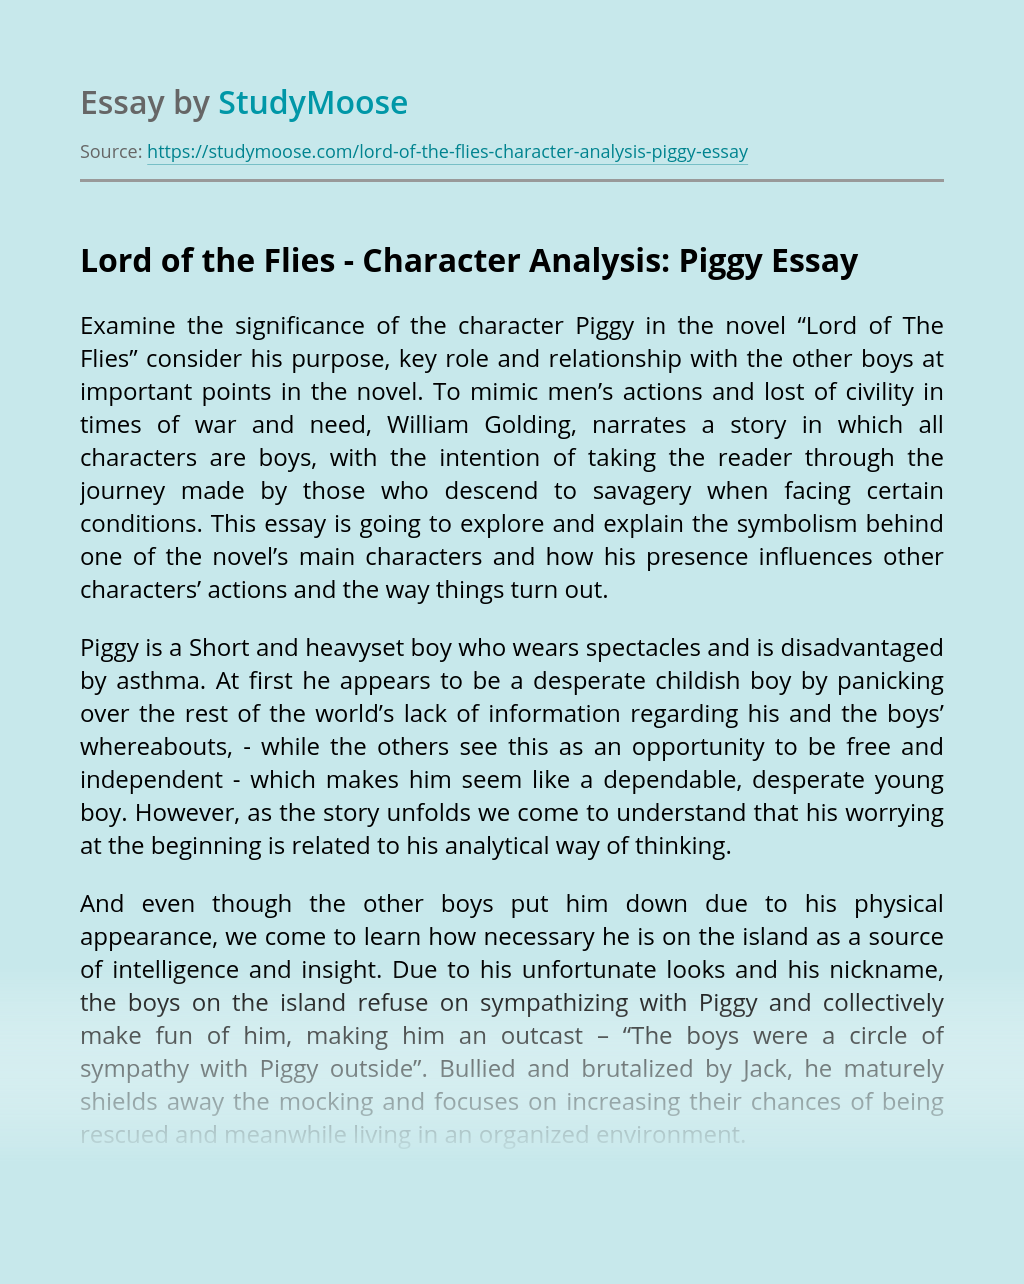 Lord of the Flies - Character Analysis: Piggy